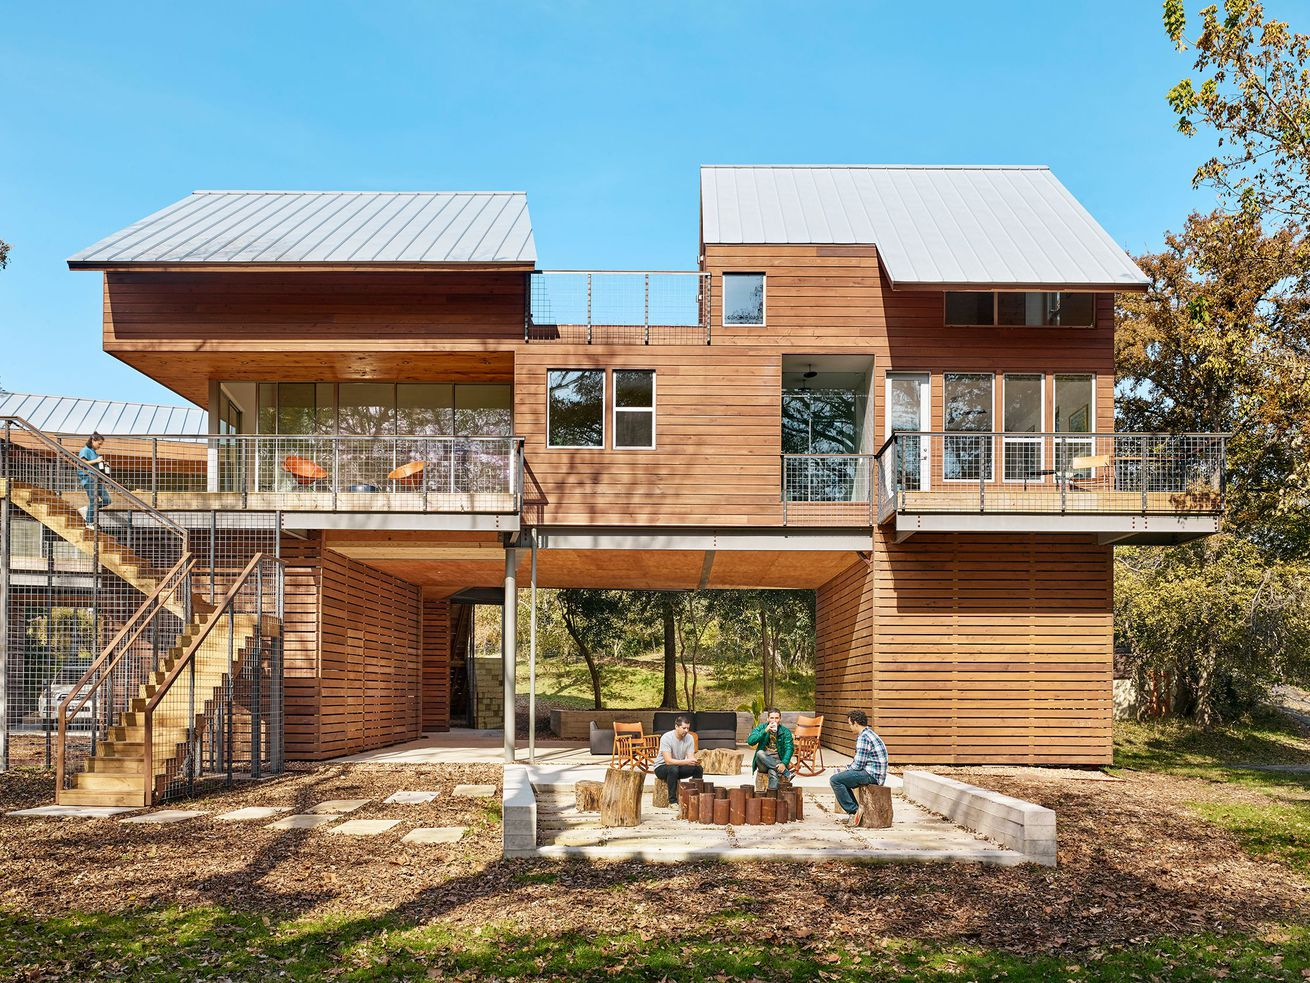 Timber house with large deck and outdoor seating area.